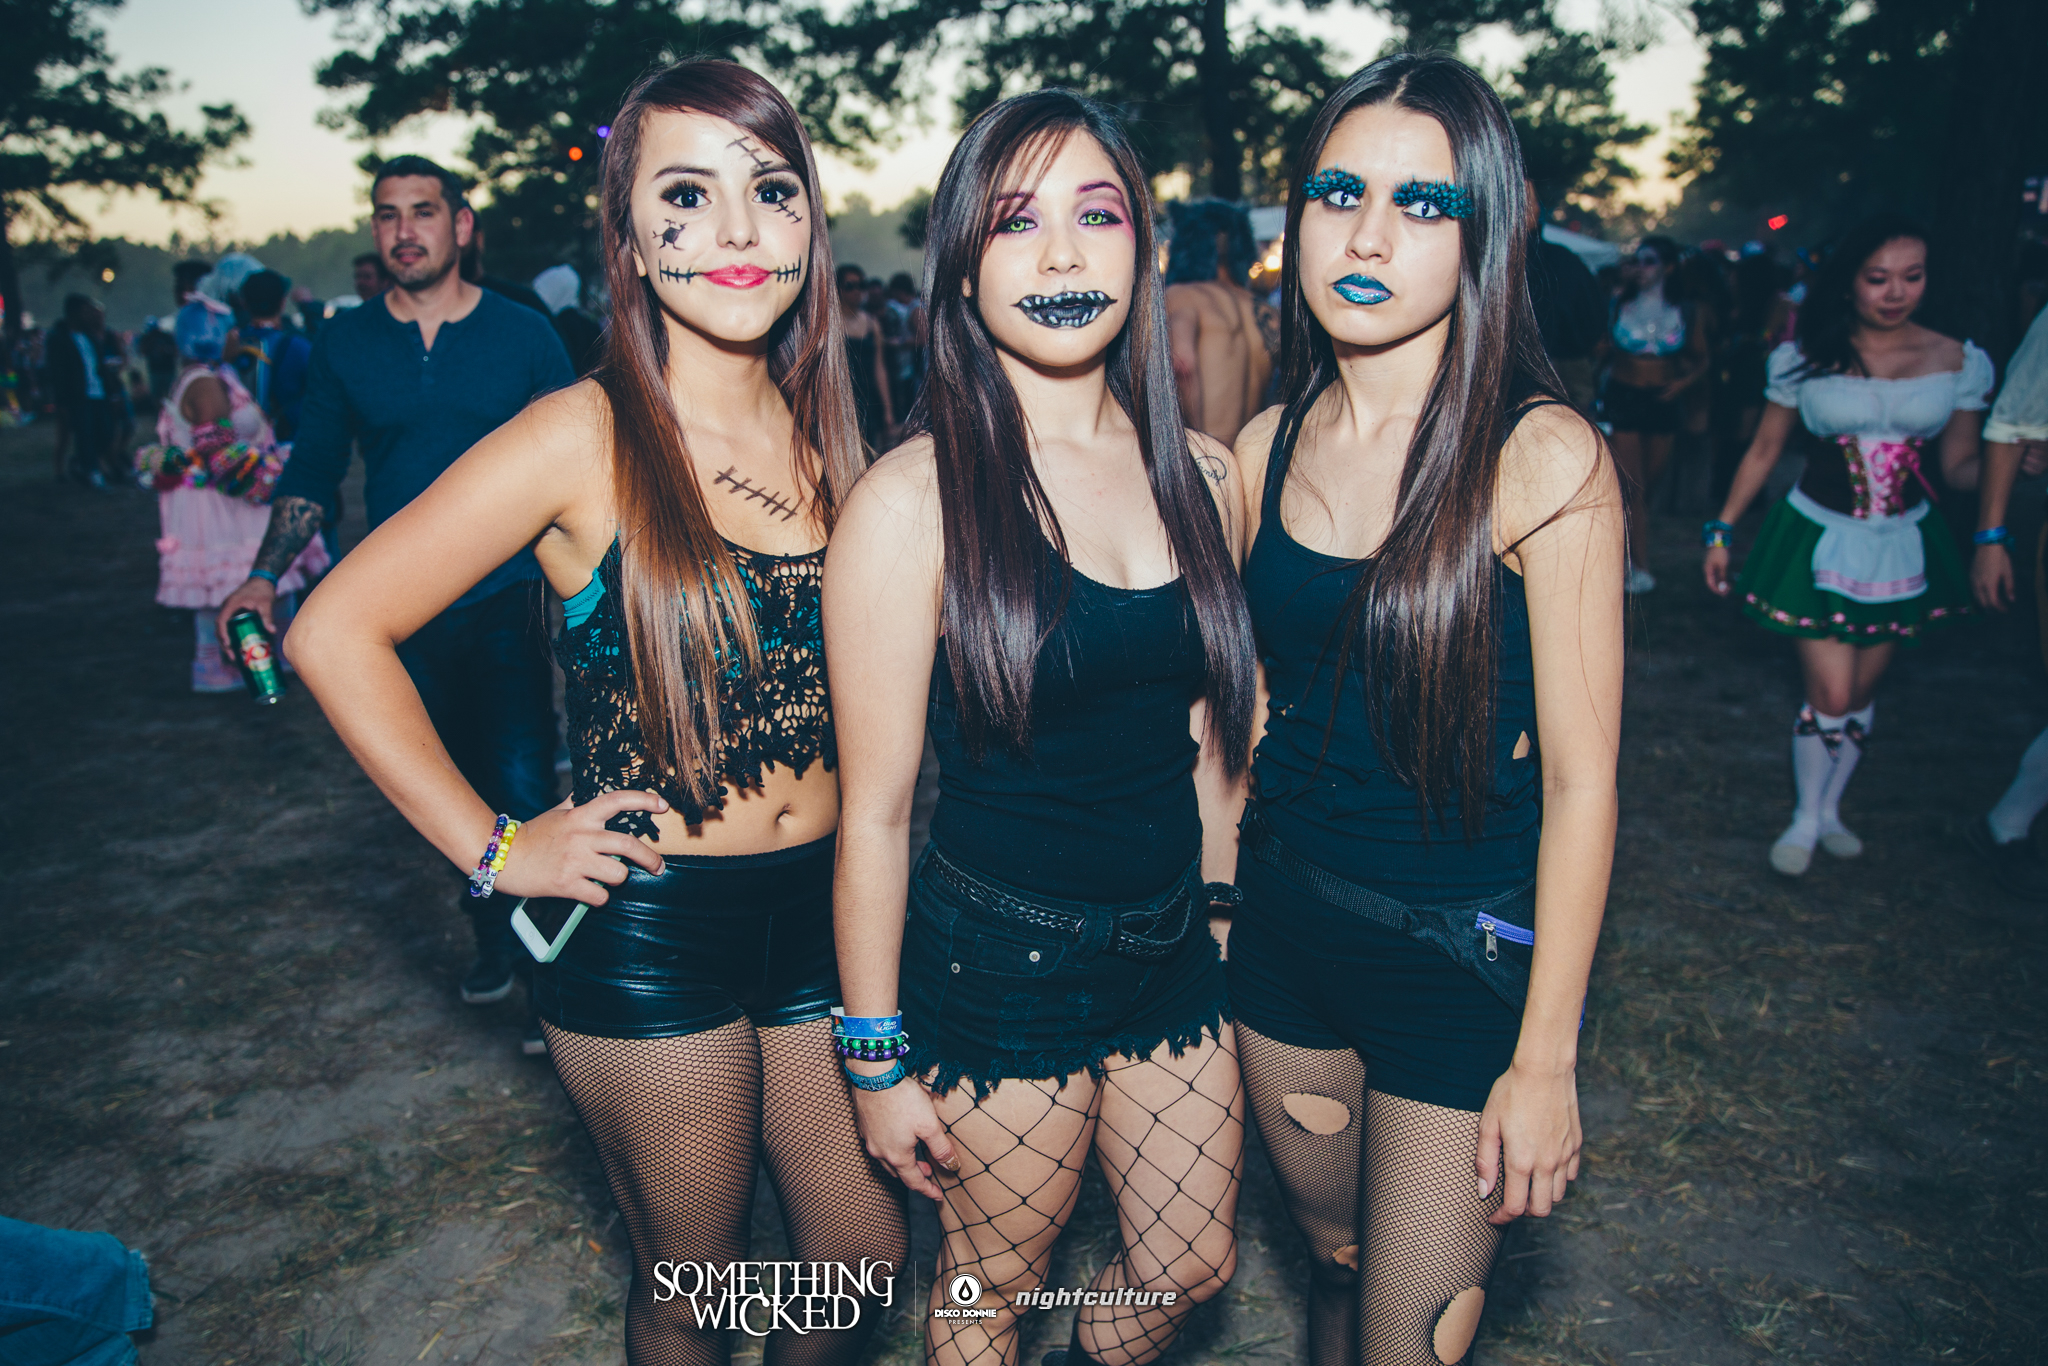 fans with wicked face paint